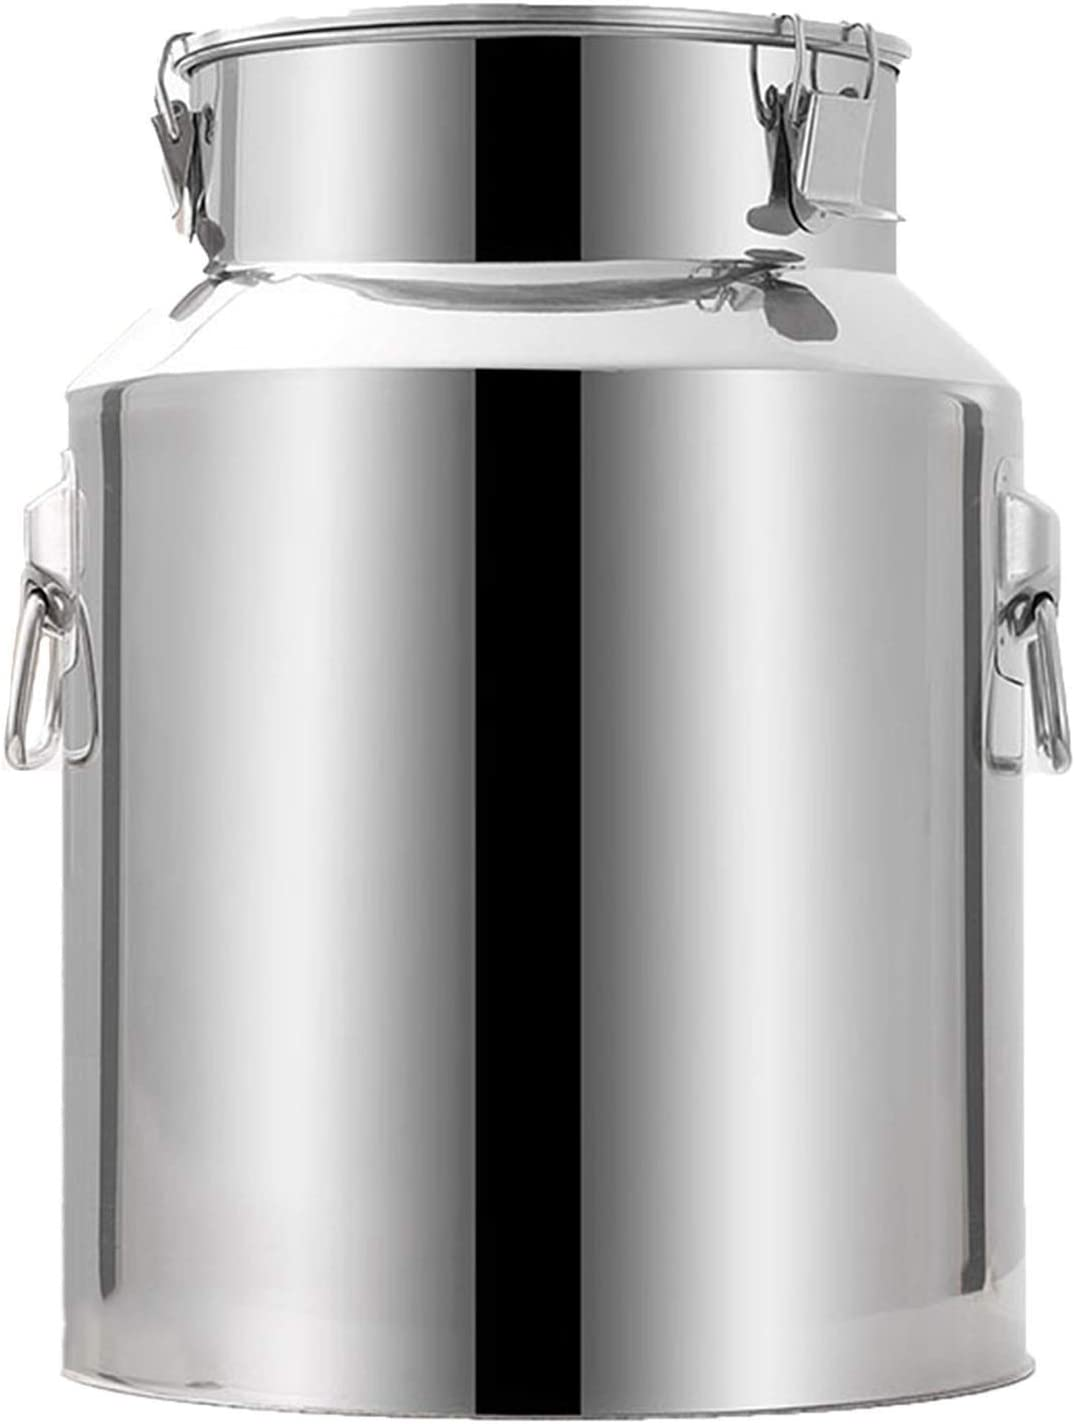 Airtight Canisters Stainless In stock Steel Milk Transport Cans price Sealed